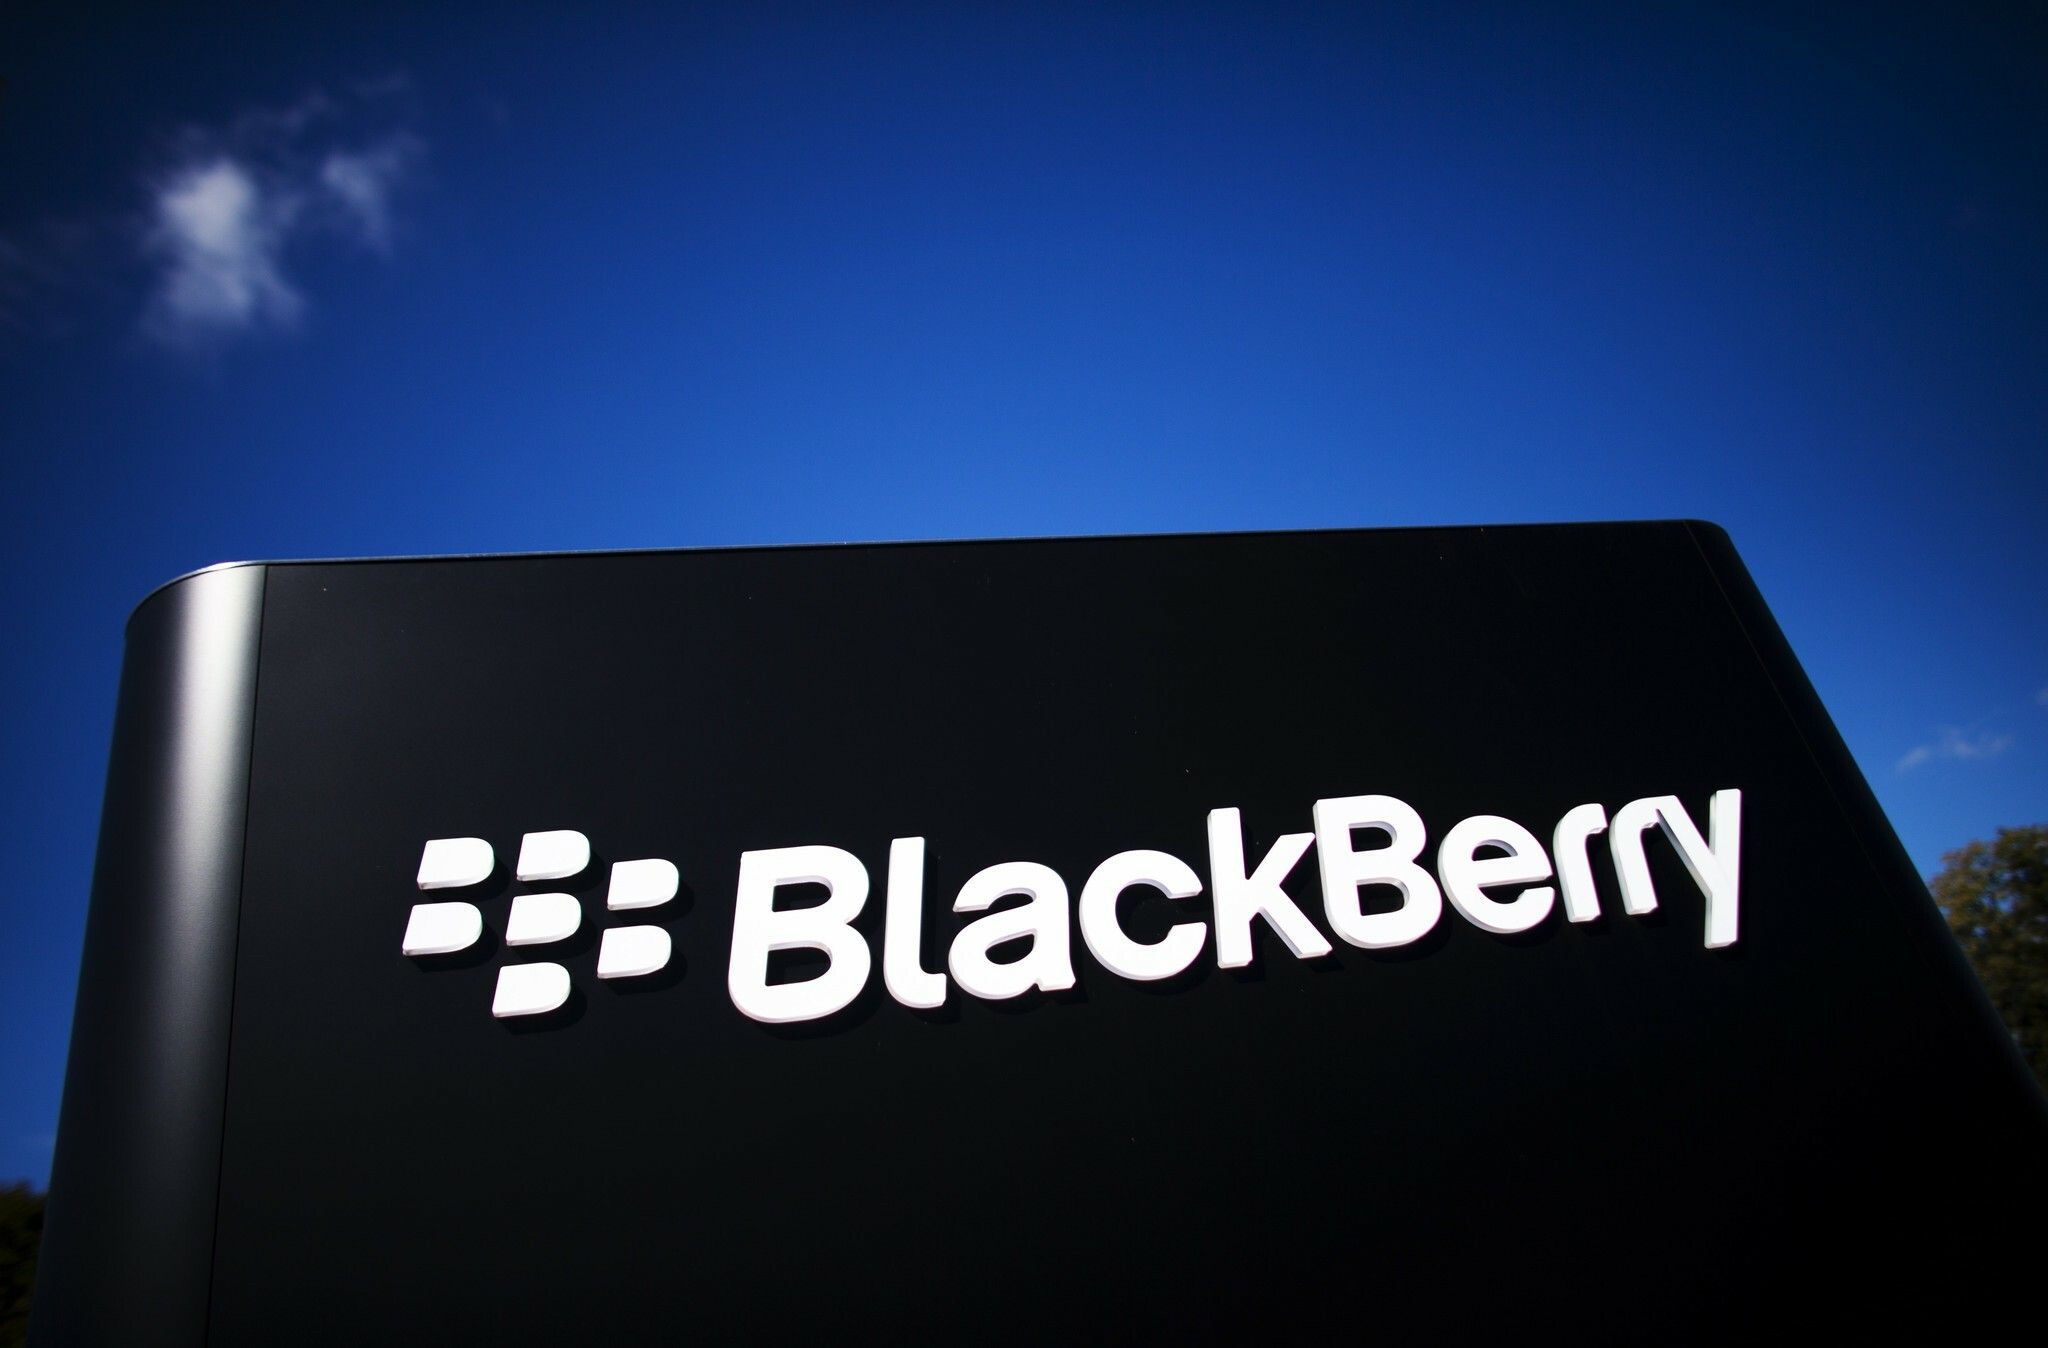 BlackBerry to announce Q4 and Fiscal Year 2019 results on March 28, 2019